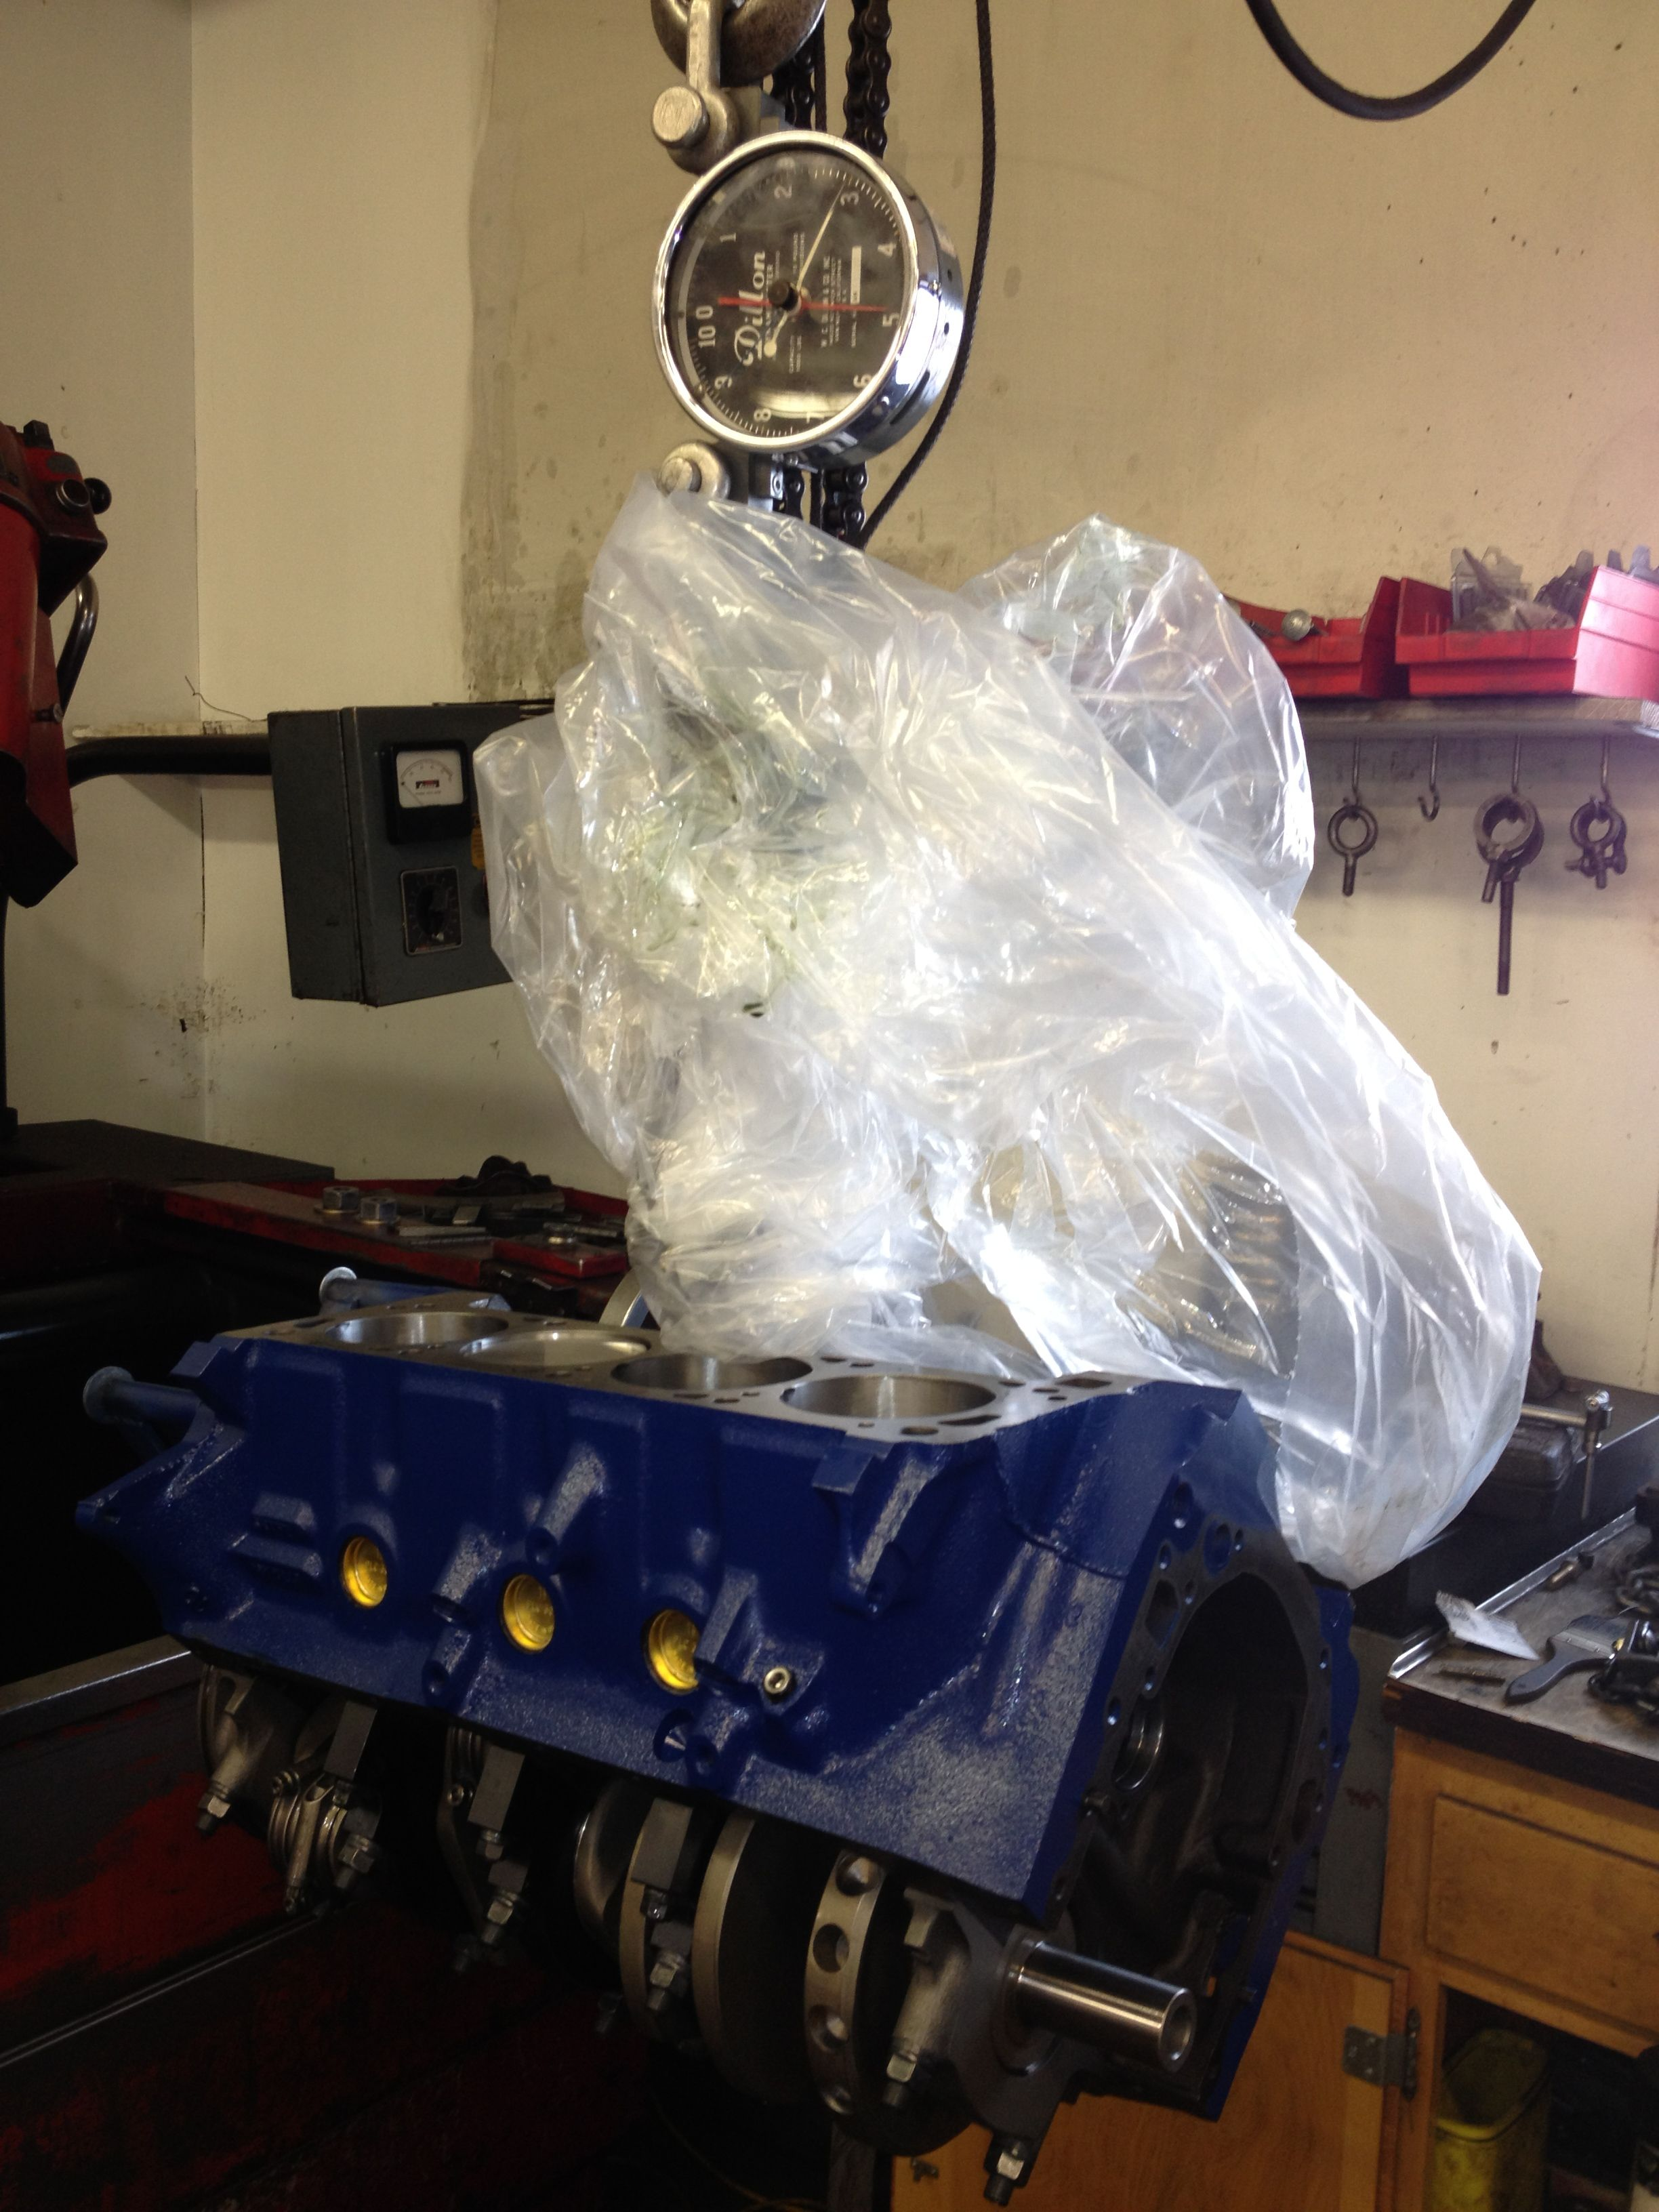 400 Ford stroker short block  #300, includes engine stand